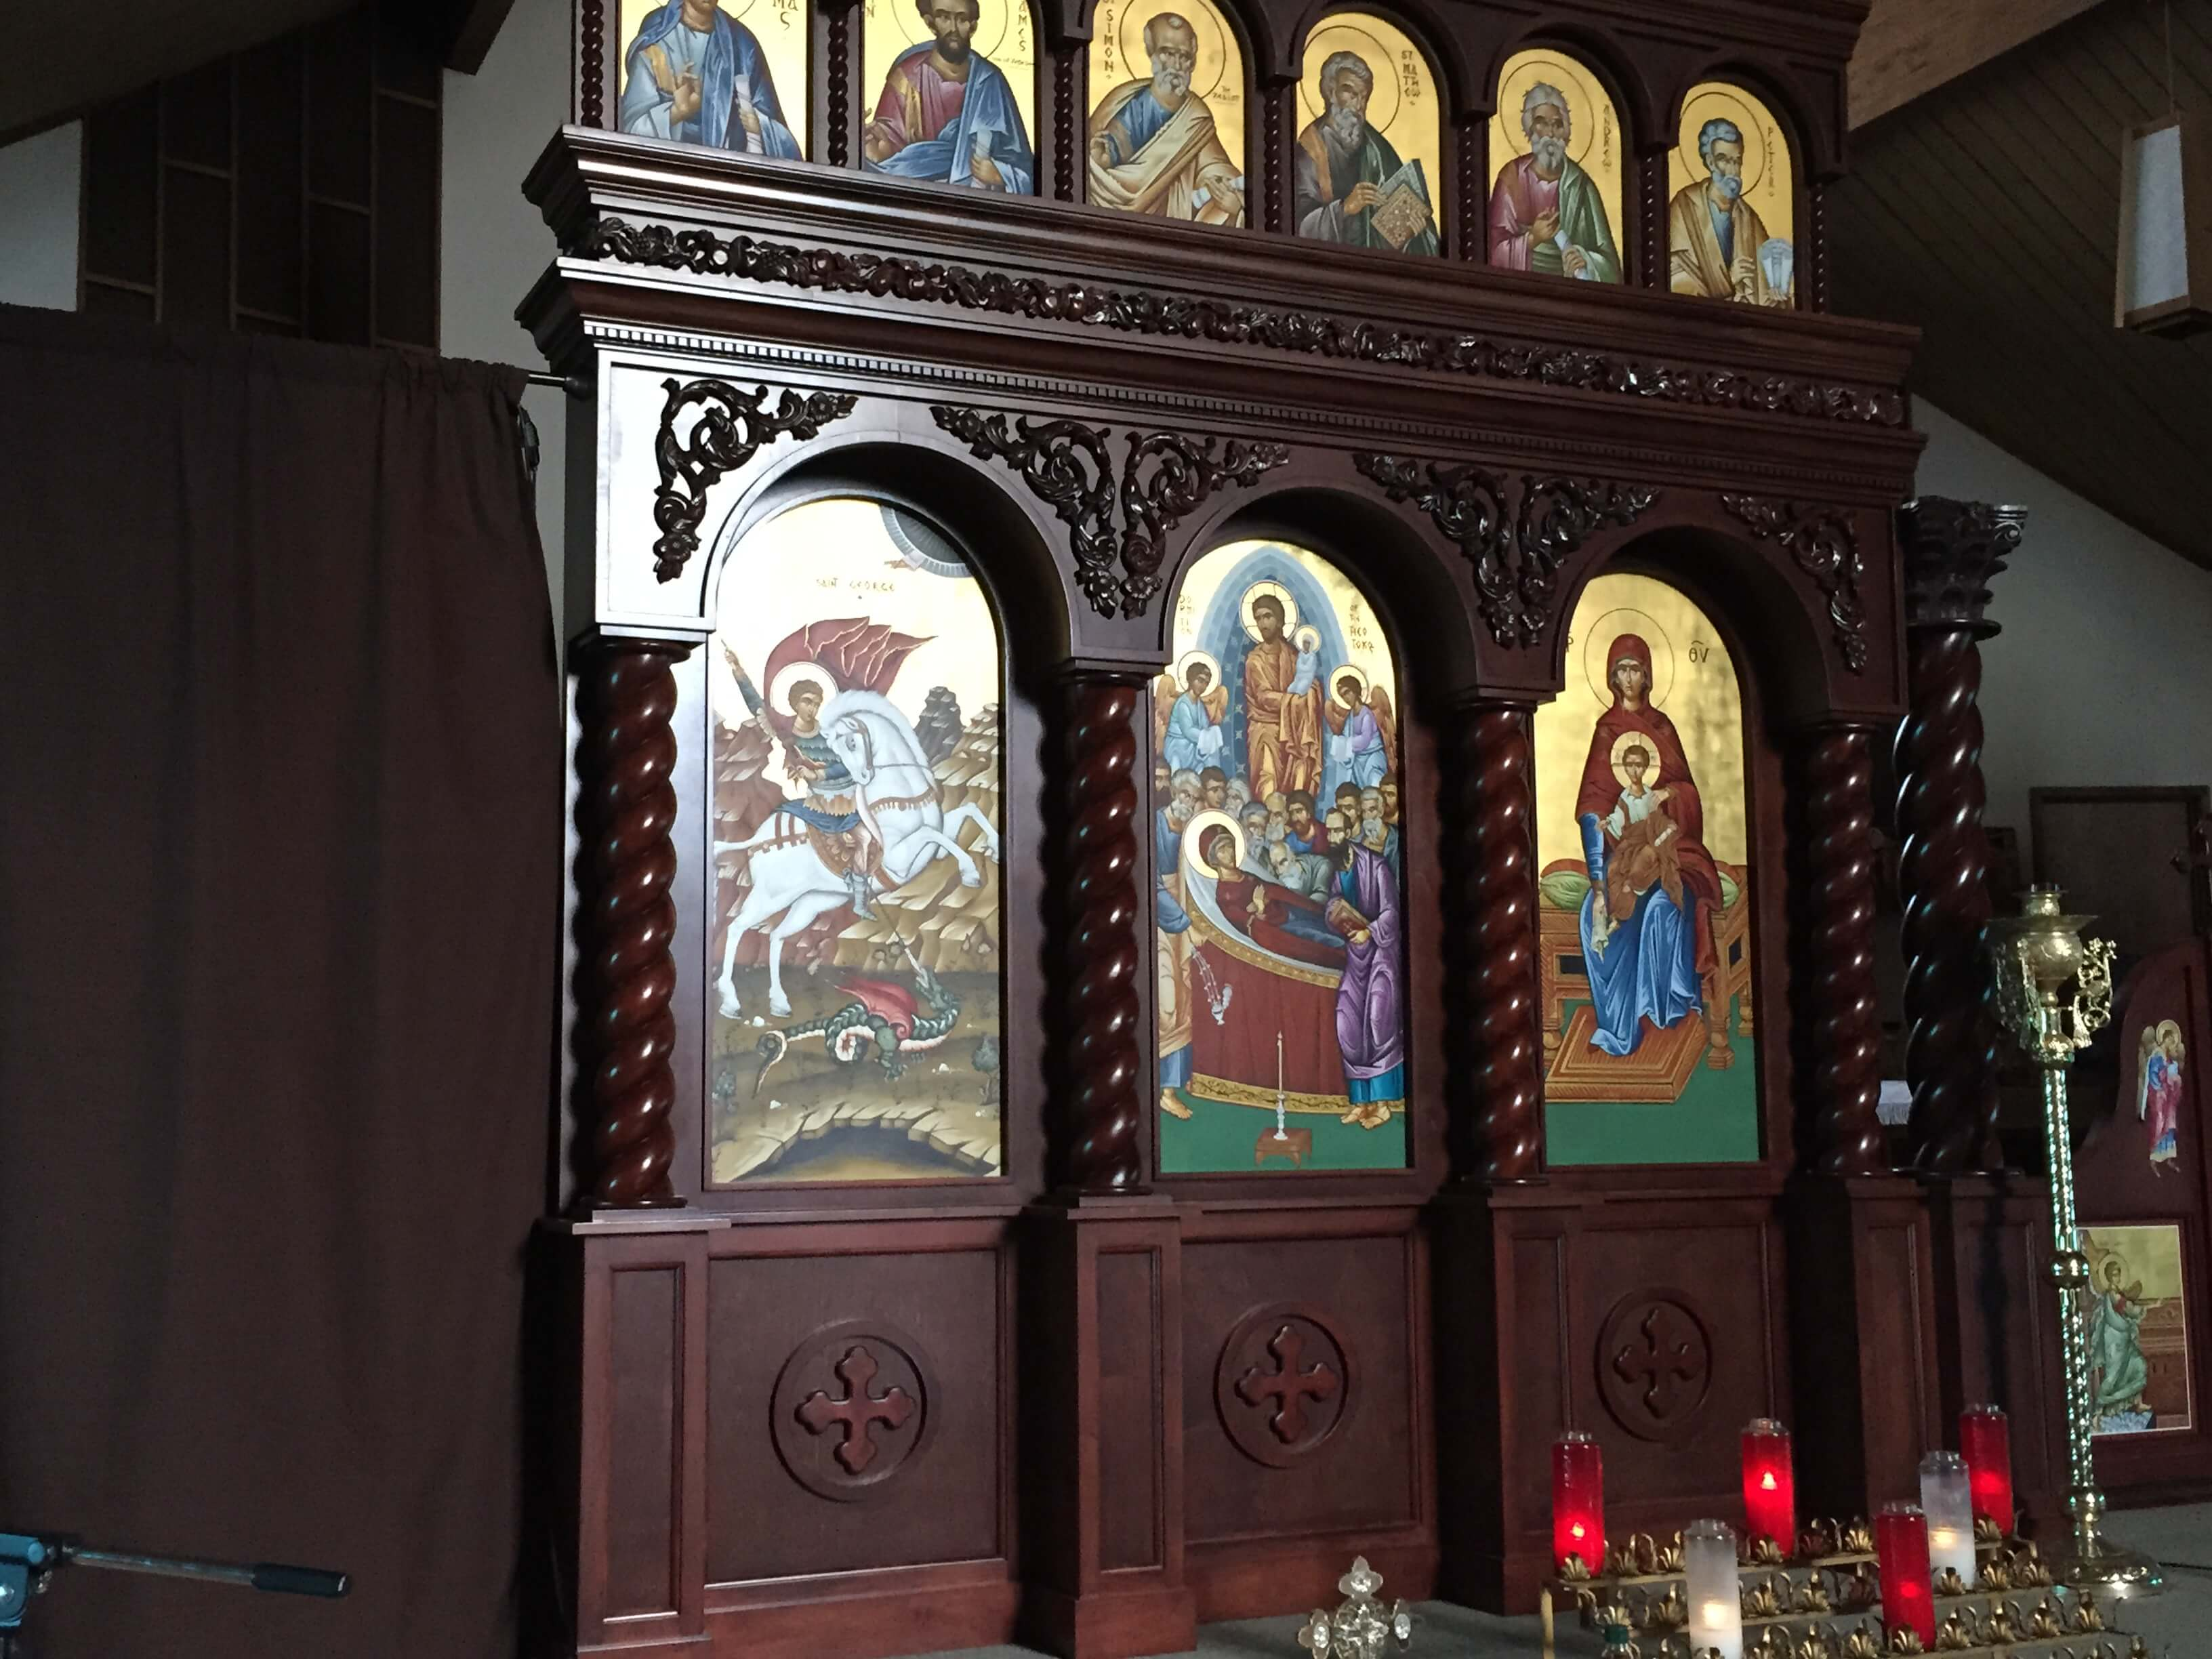 Icons of Saints of the Christian Orthodox Church. Photo courtesy of Ray Hanania